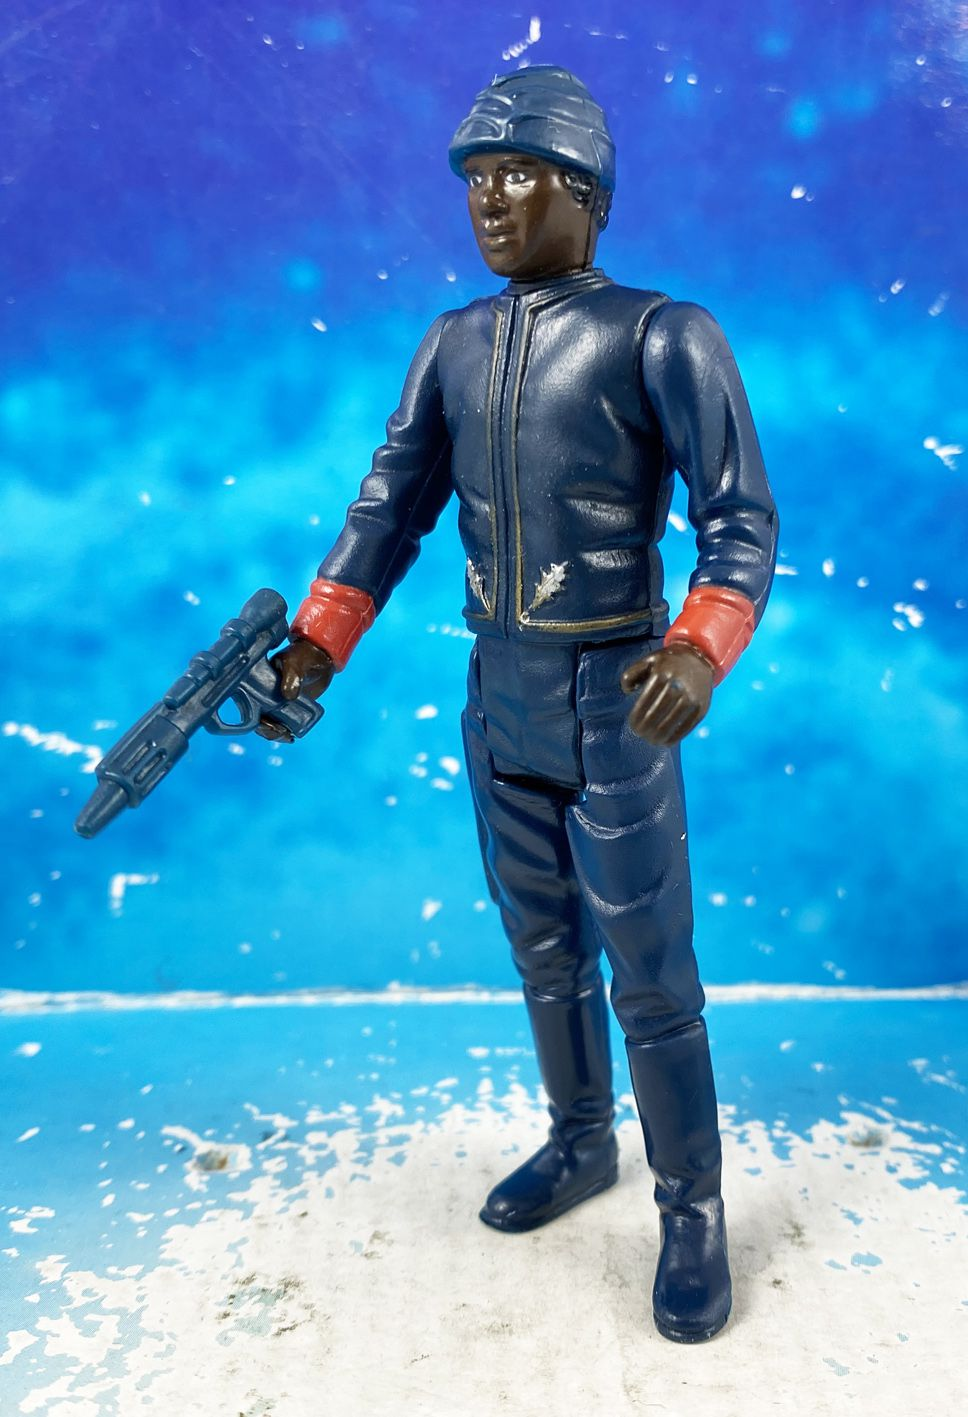 Star Wars (L\'Empire contre-attaque) - Kenner - Bespin Security Guard (Noir)